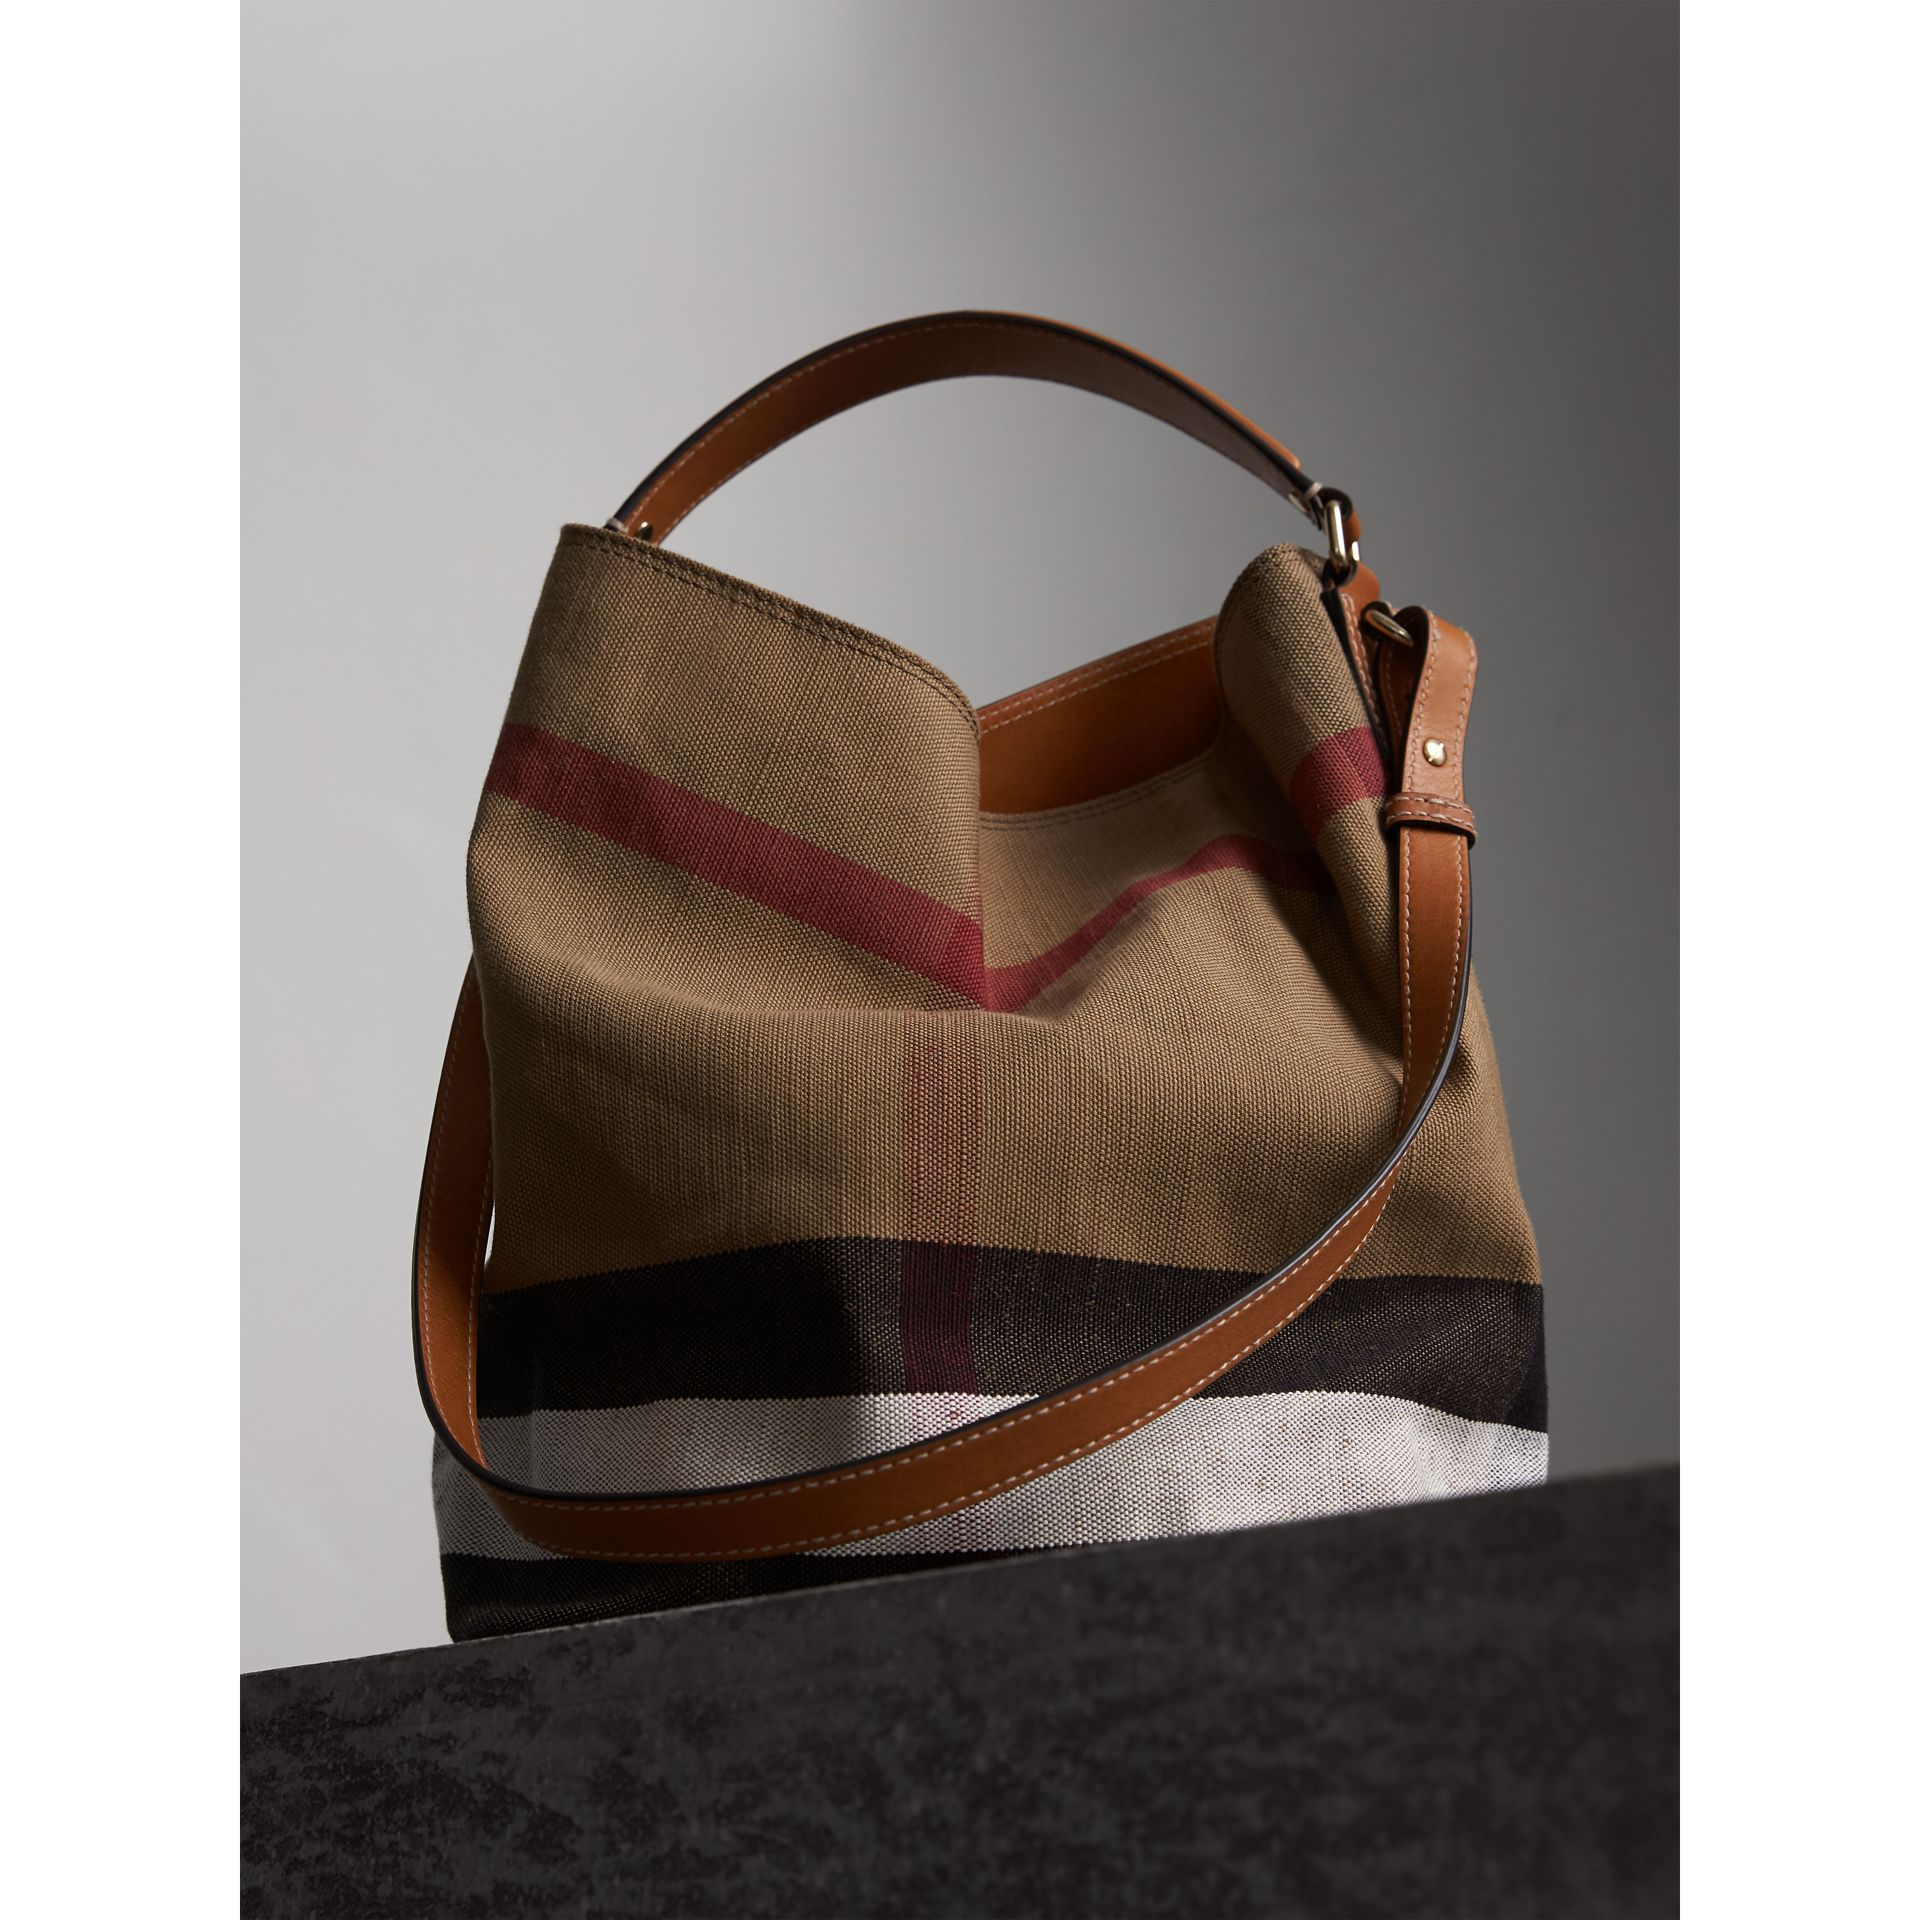 Burberry Medium Canvas Check Hobo Bag at £550   love the brands 3e39694167